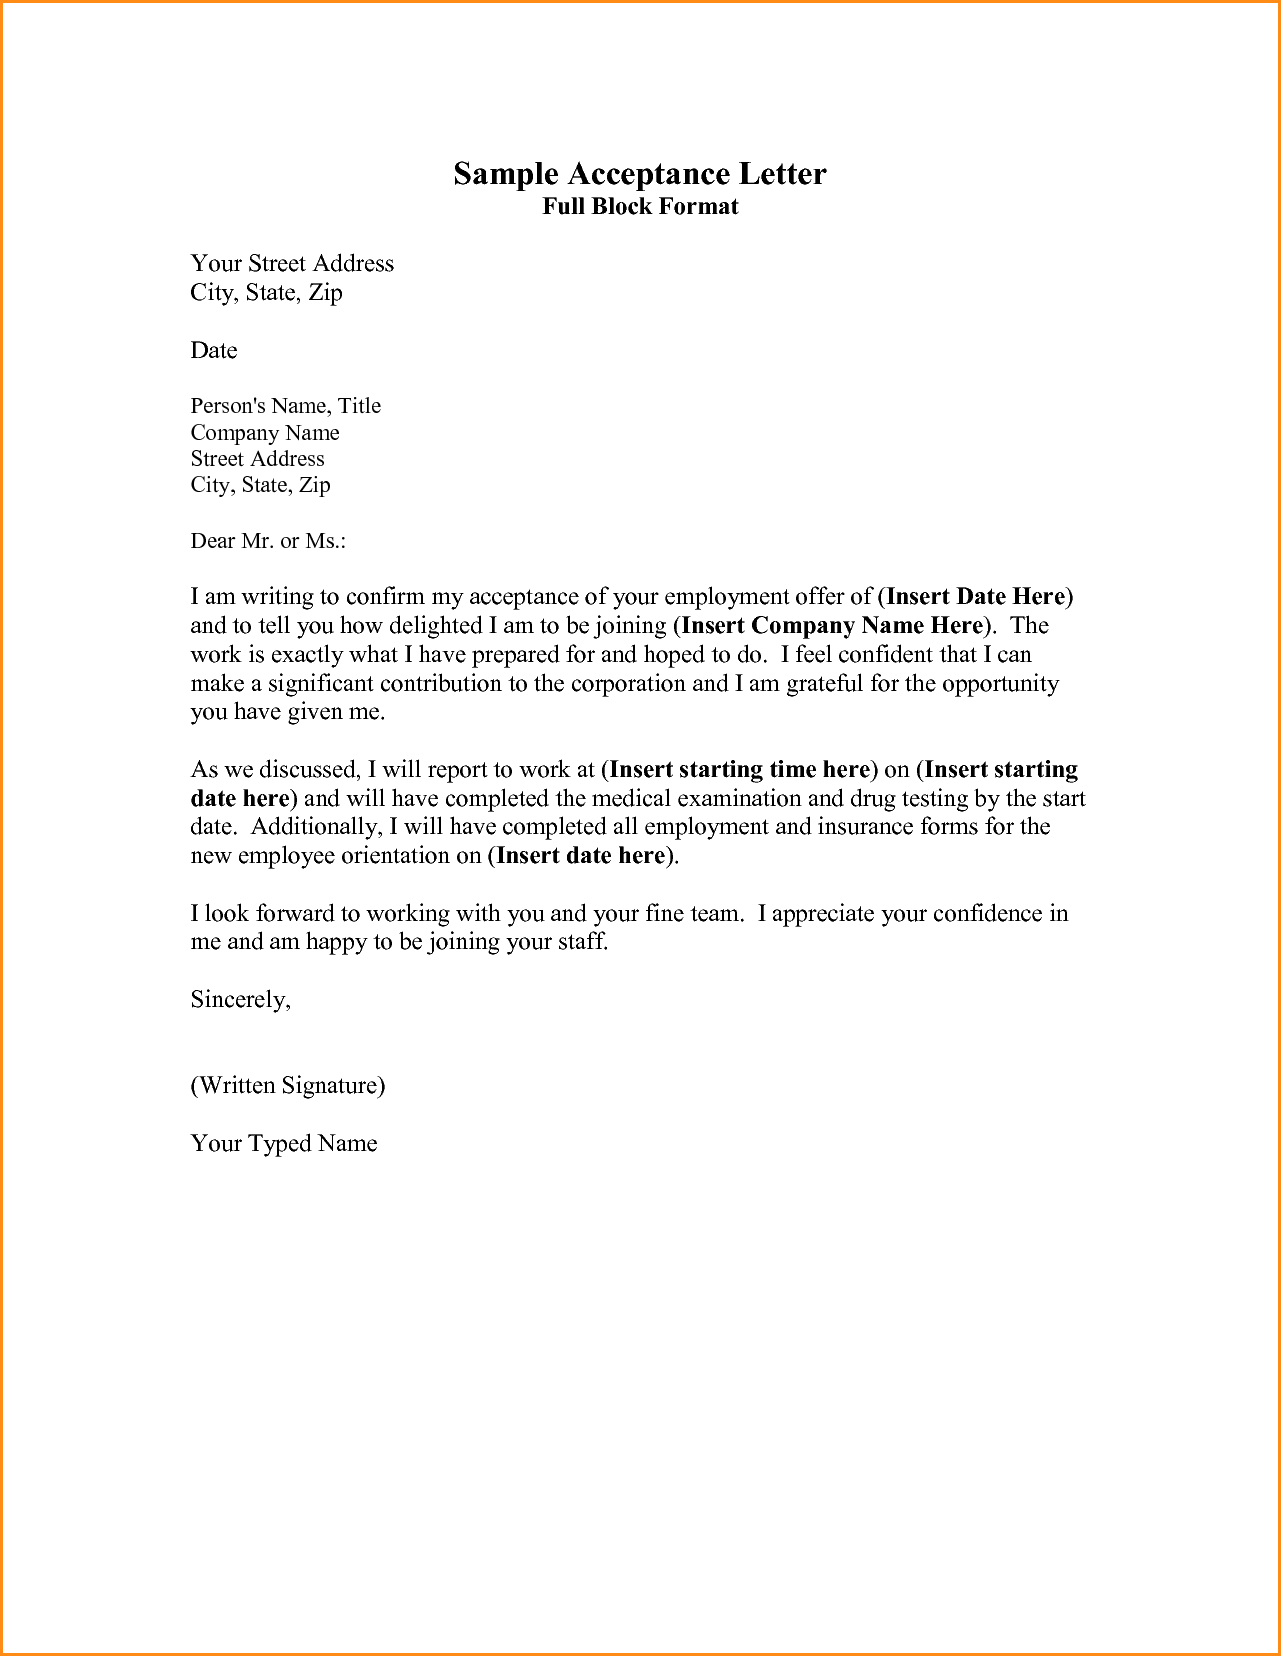 Business Proposal Acceptance Letter Template - Sample Acceptance Letter Full Block format Your Street Address